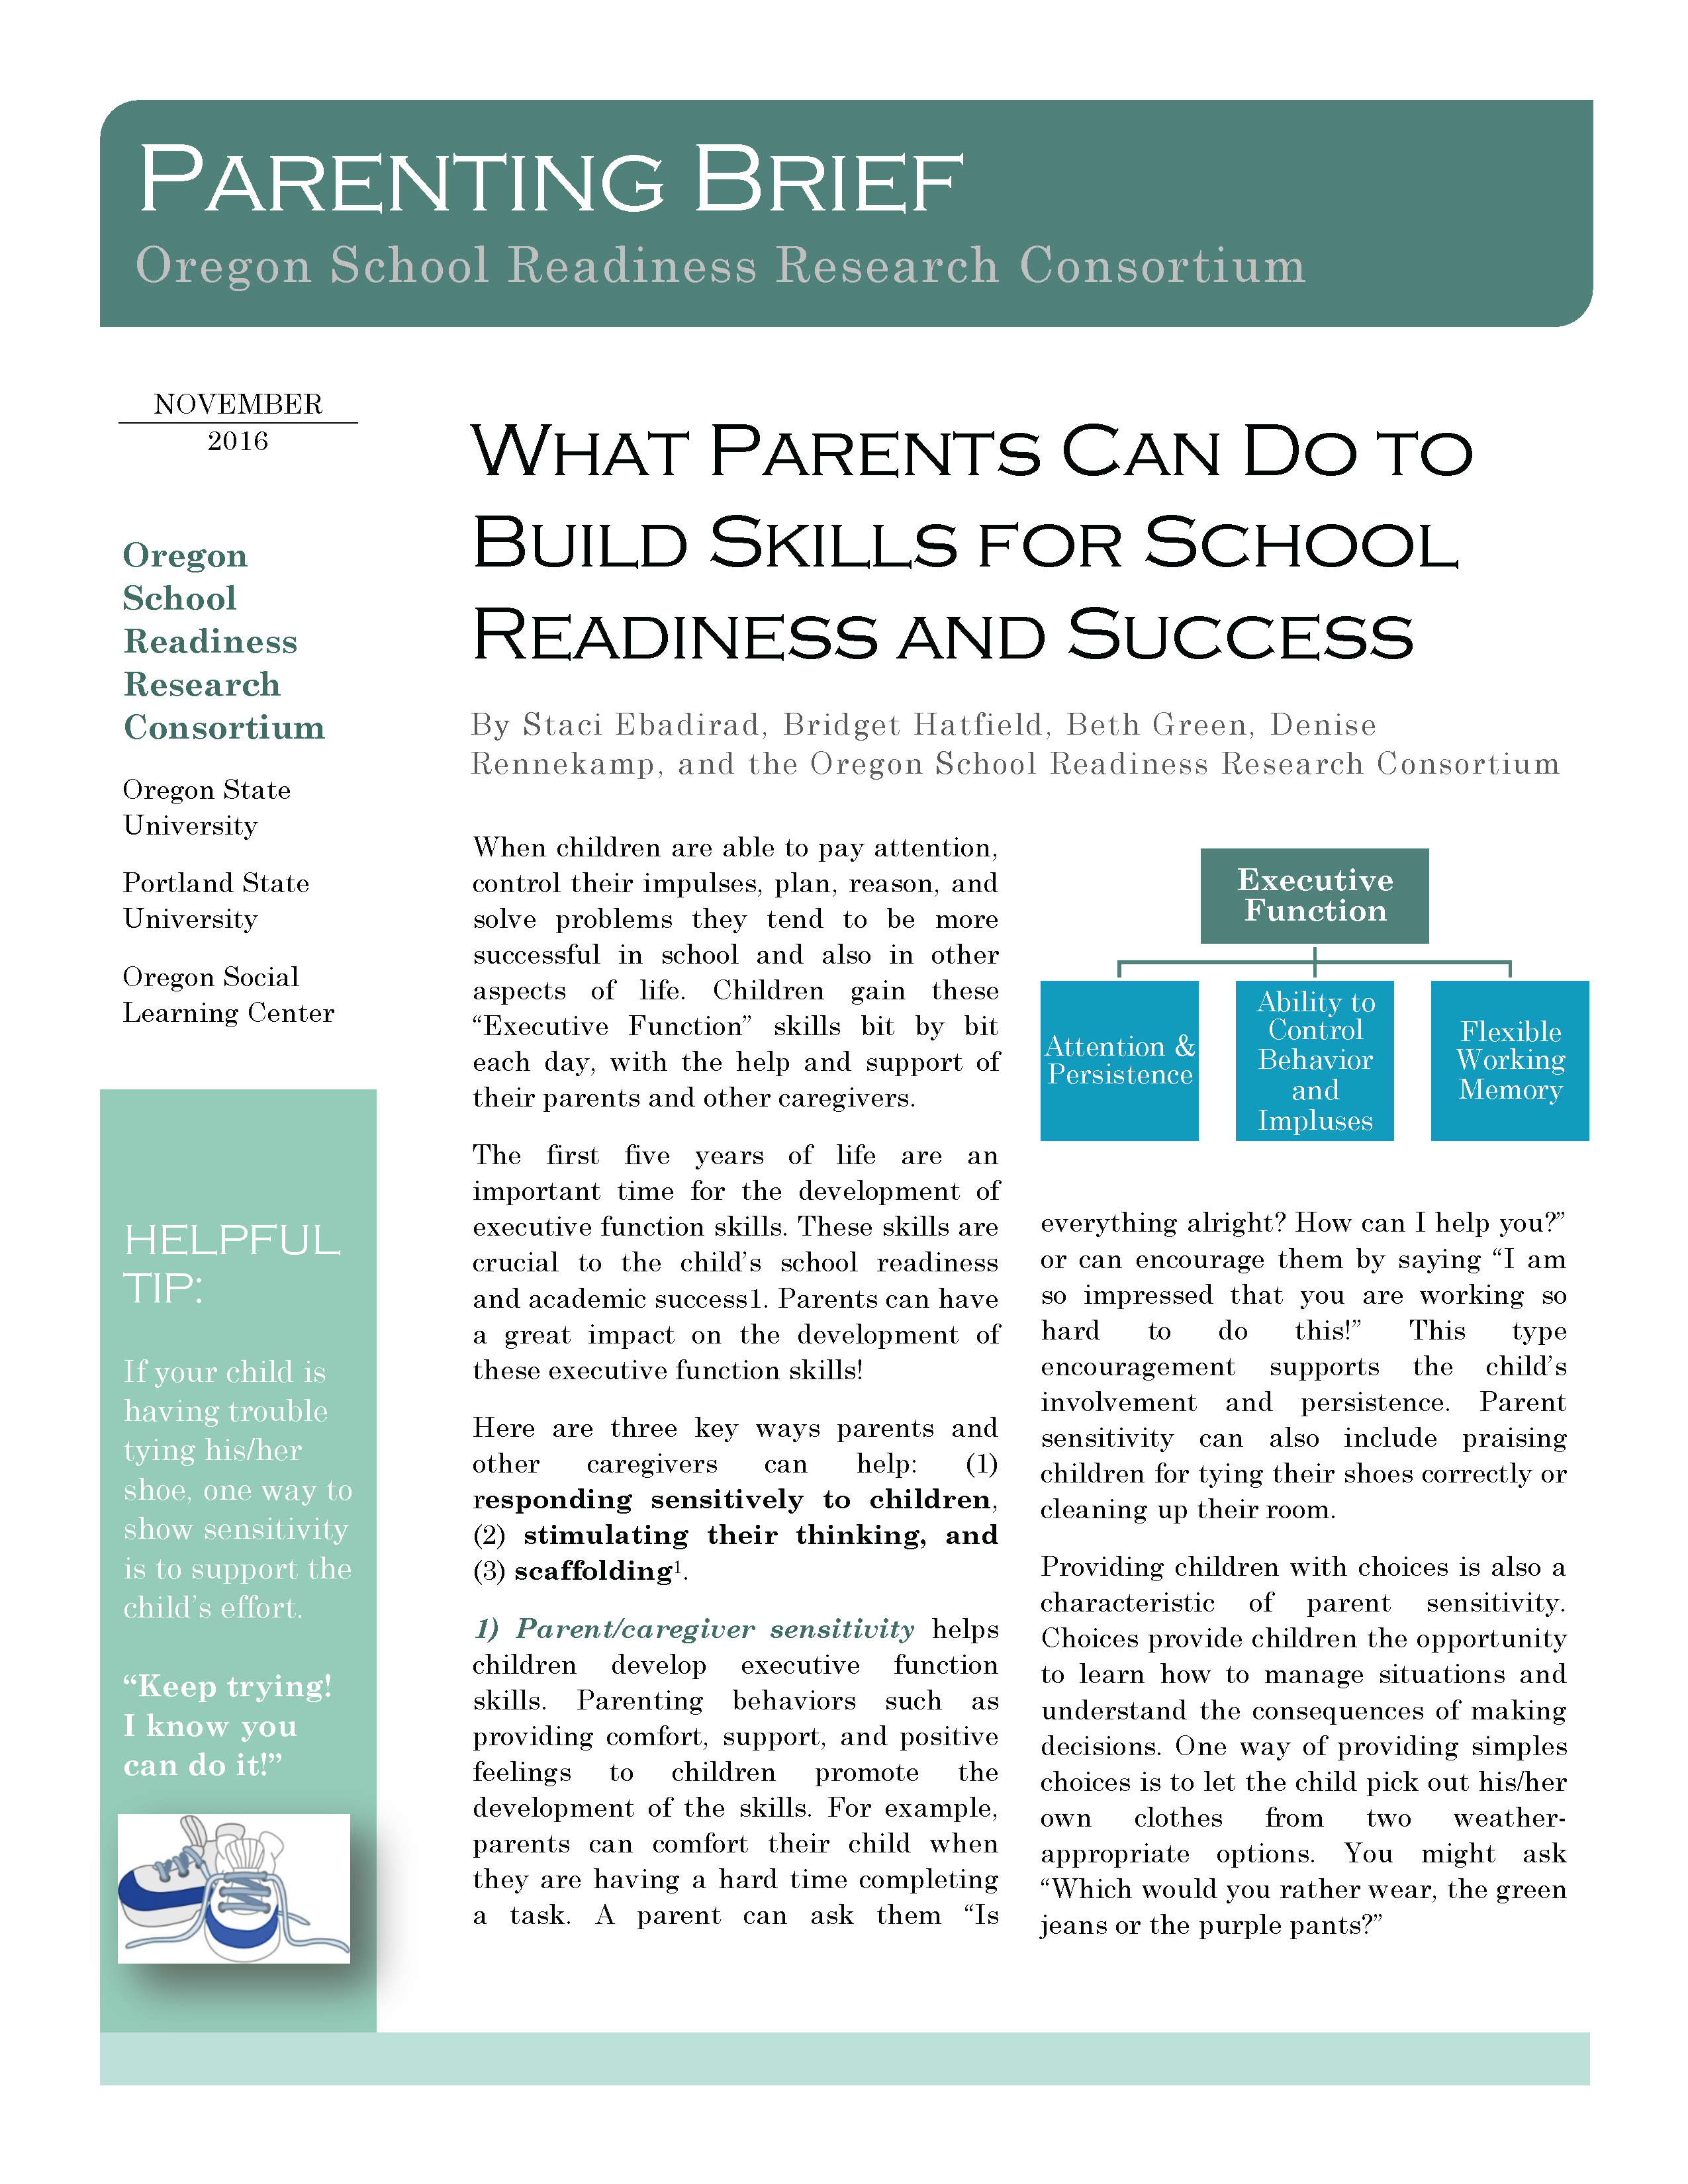 What Parents Can Do to Build Skills for School Readiness and Success